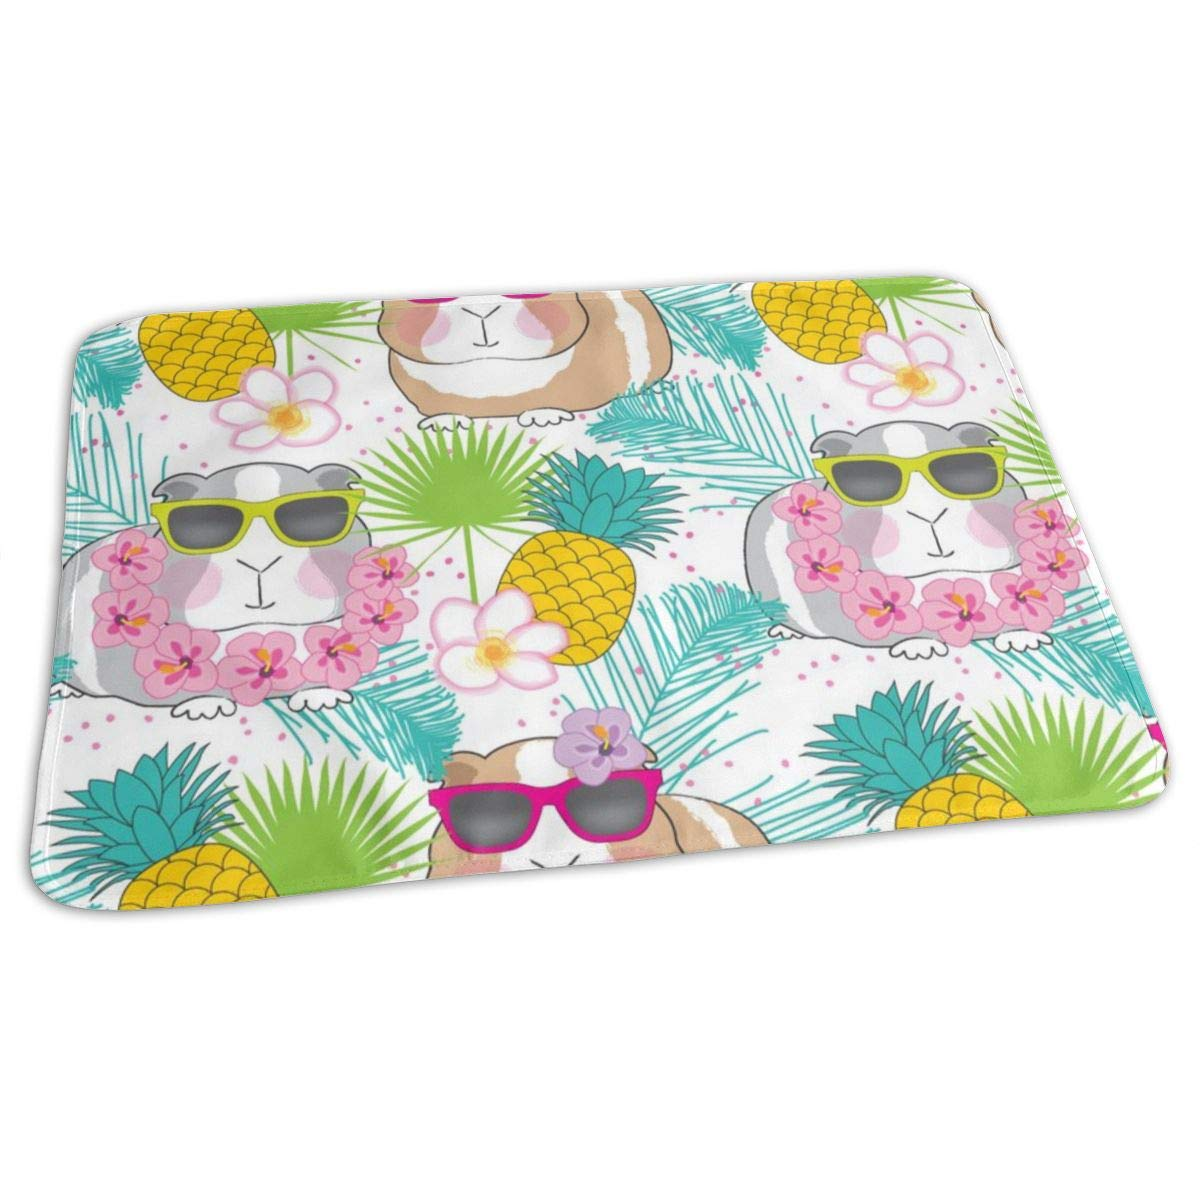 Tropical Guinea-pigs-on-white/_1045 Baby Reusable Diaper Changing Pad Portable Waterproof Urine Mat 27.5 x 19.7 Inch